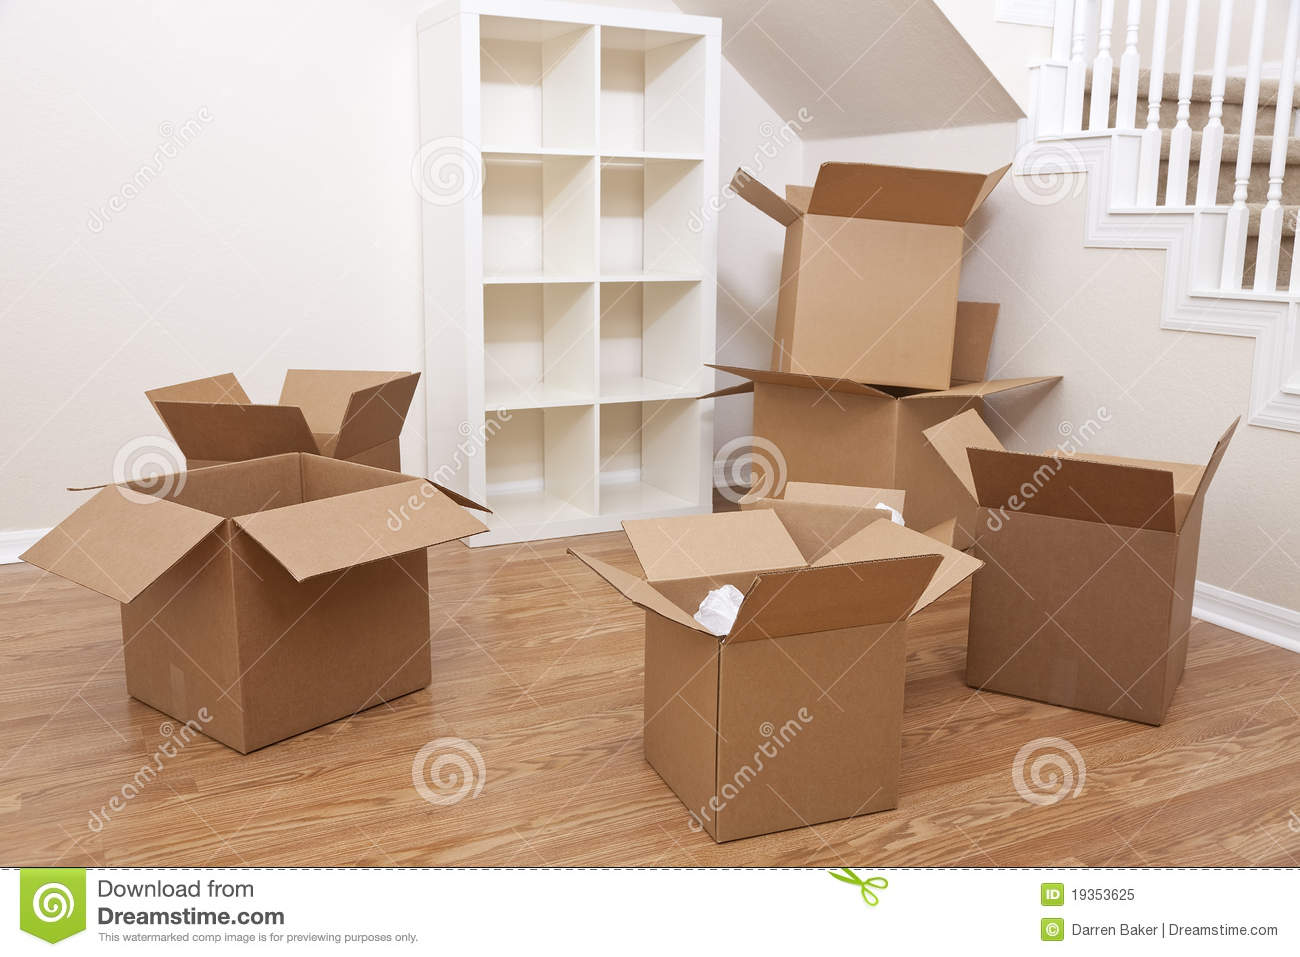 Room of cardboard boxes for moving house stock image When is the best time to move house